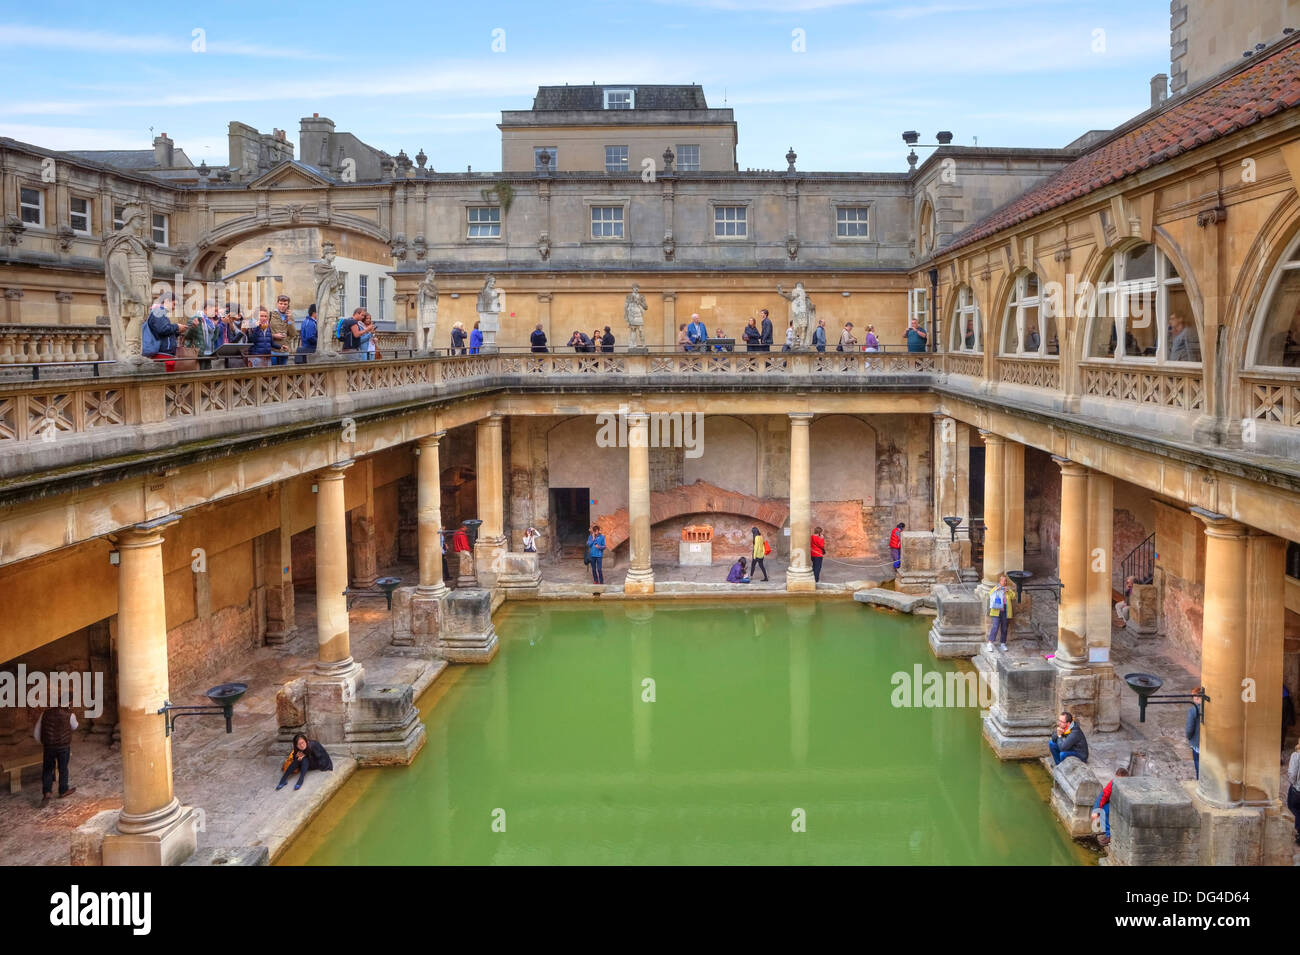 Roman Baths, Bath, Somerset, England, United Kingdom Stock Photo ...